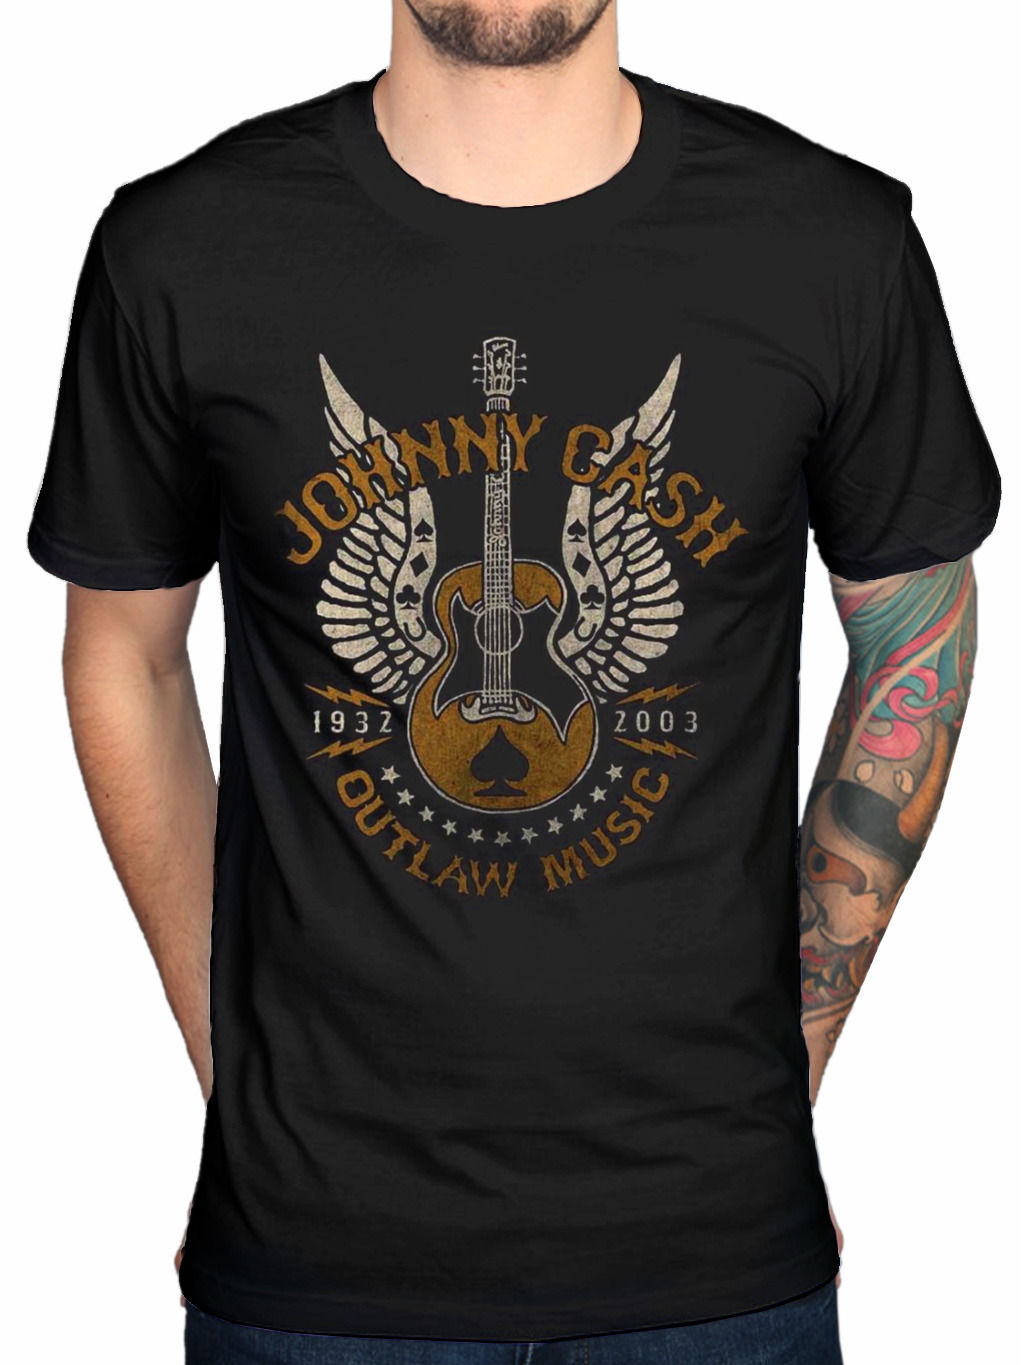 Johnny cash rebel t shirt logo - 2017 Cool Men Fashion Johnny Cash Outlaw T Shirt American Rebel Out Amoung The Stars Folsom Hipster Style Casual T Shirt